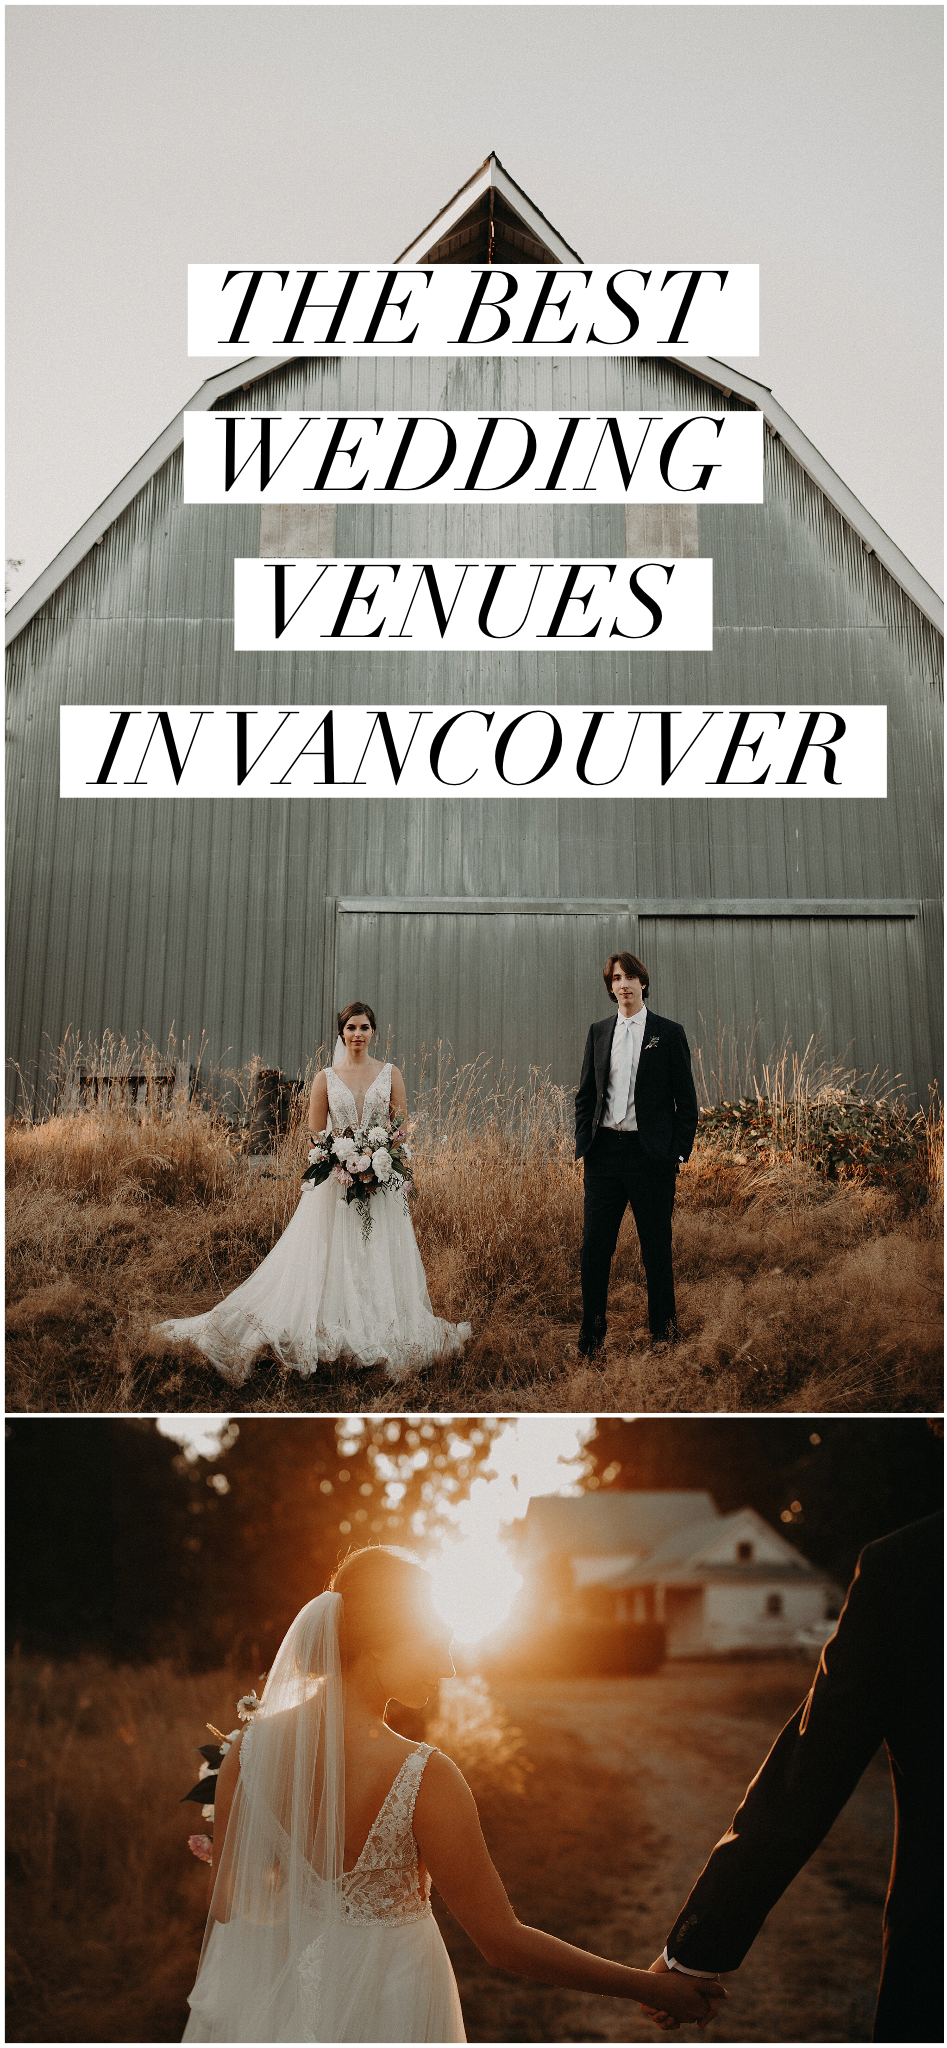 The Best Wedding Venues In Vancouver Vancouver Wedding Venue Best Wedding Venues Wedding Venues